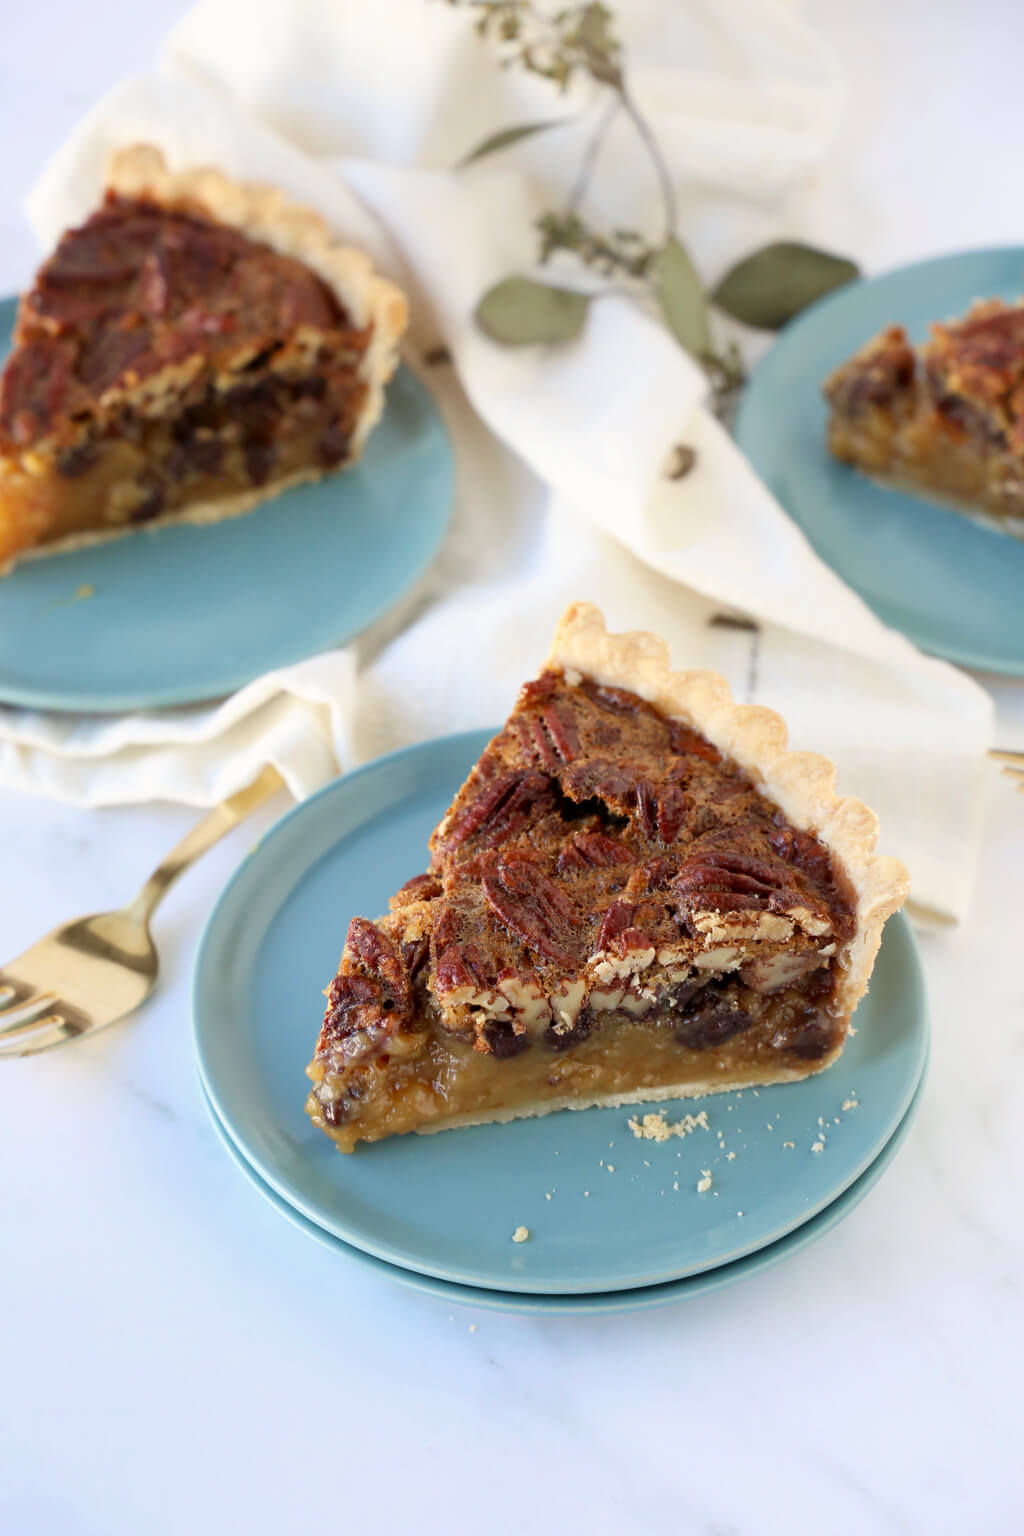 three slices of pecan tart on turquoises dishes